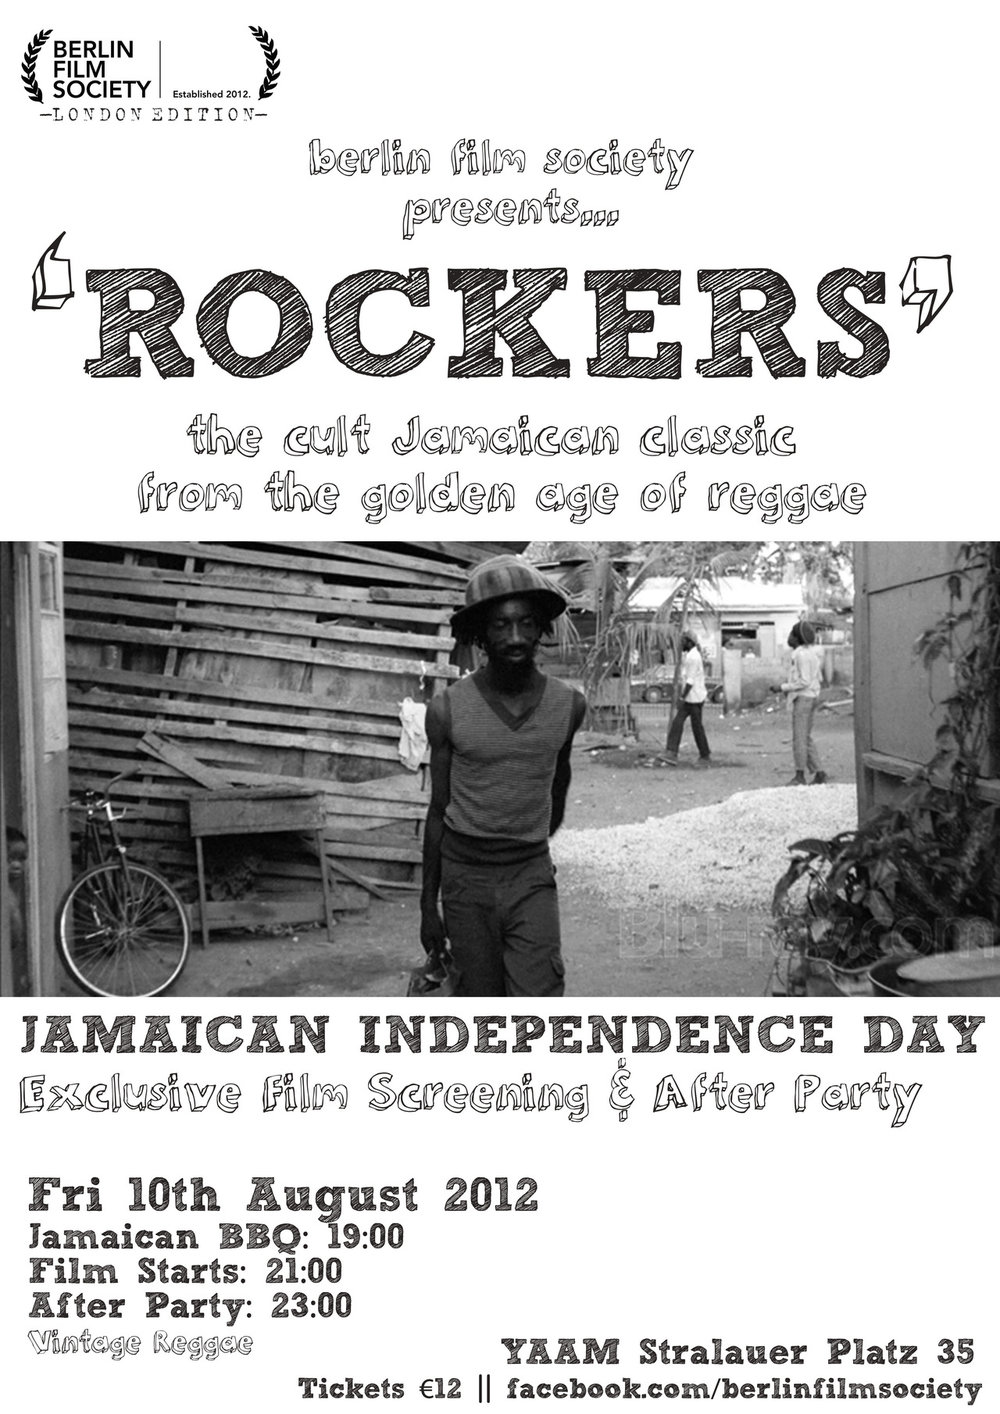 "UNLIKE CITY GUIDES   Berlin Film Society - Rockers    Fifty years ago this week, Jamaica gained independence from the British. Celebrate in style Friday night as the  Berlin Film Society  shows an exclusive screening of the 1978 cult classic, ""Rockers,"" at  YAAM . Show up early to feast on some delish Jamaican BBQ before the 21:00 start time. Then let the soundtrack get you hyped for a vintage reggae after party with DJs Barney Millah and Stefan from  Such A Sound . An entrance fee of 12€ gets you  in on all the action ."